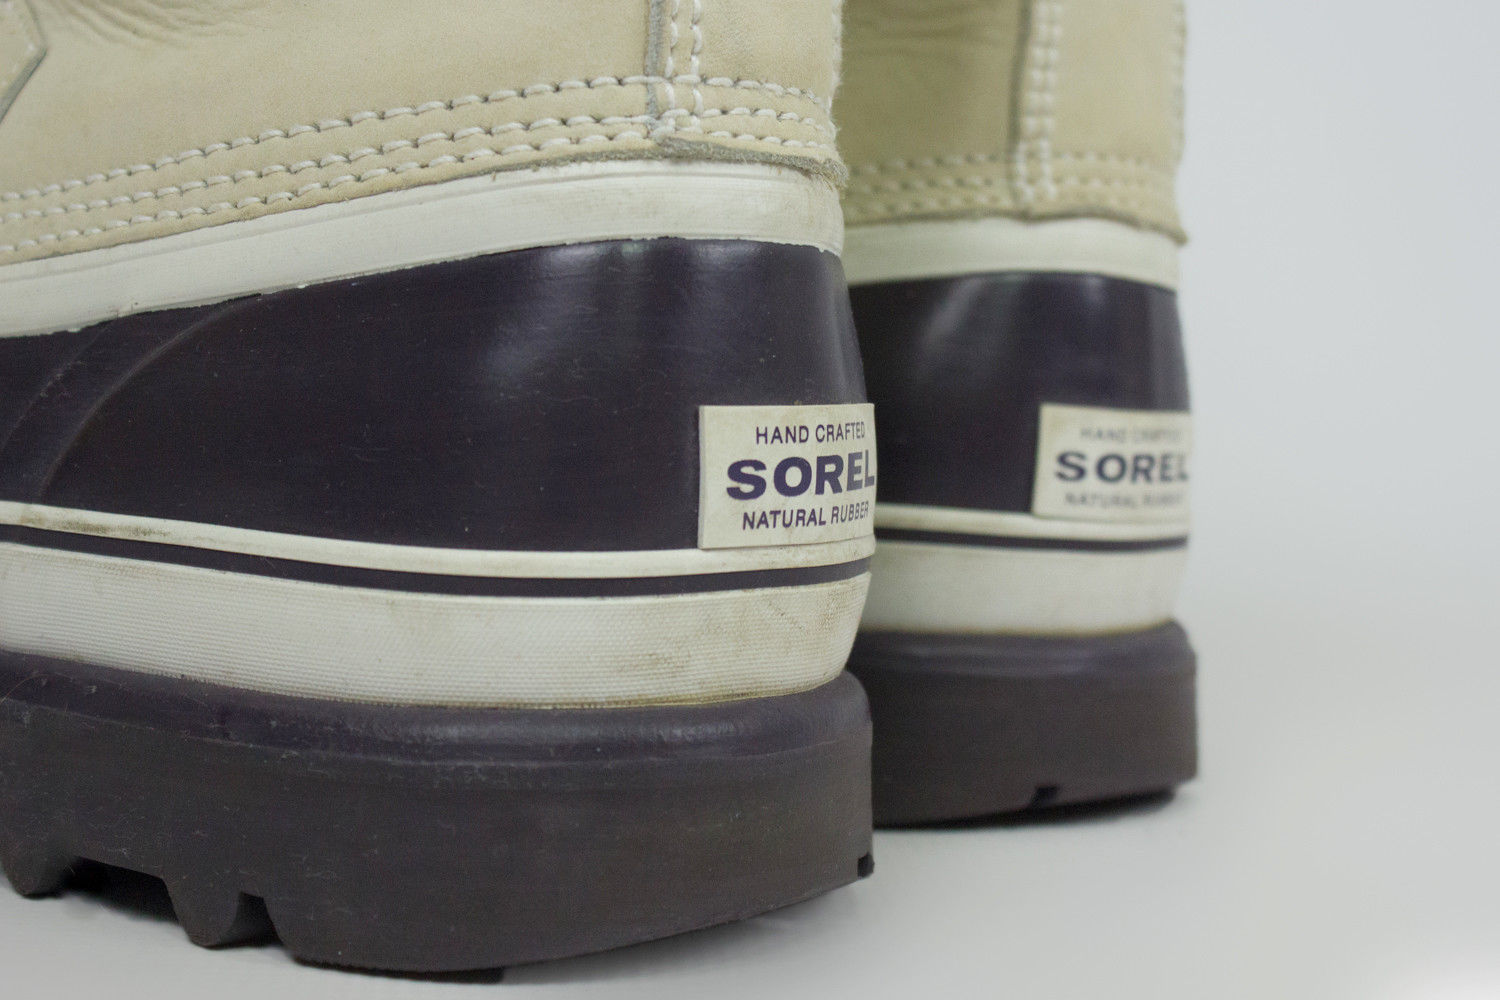 Sorel Caribou Women's Waterproof Snow Boots, USA 10/ EU 41/ UK 8 - secondfirst